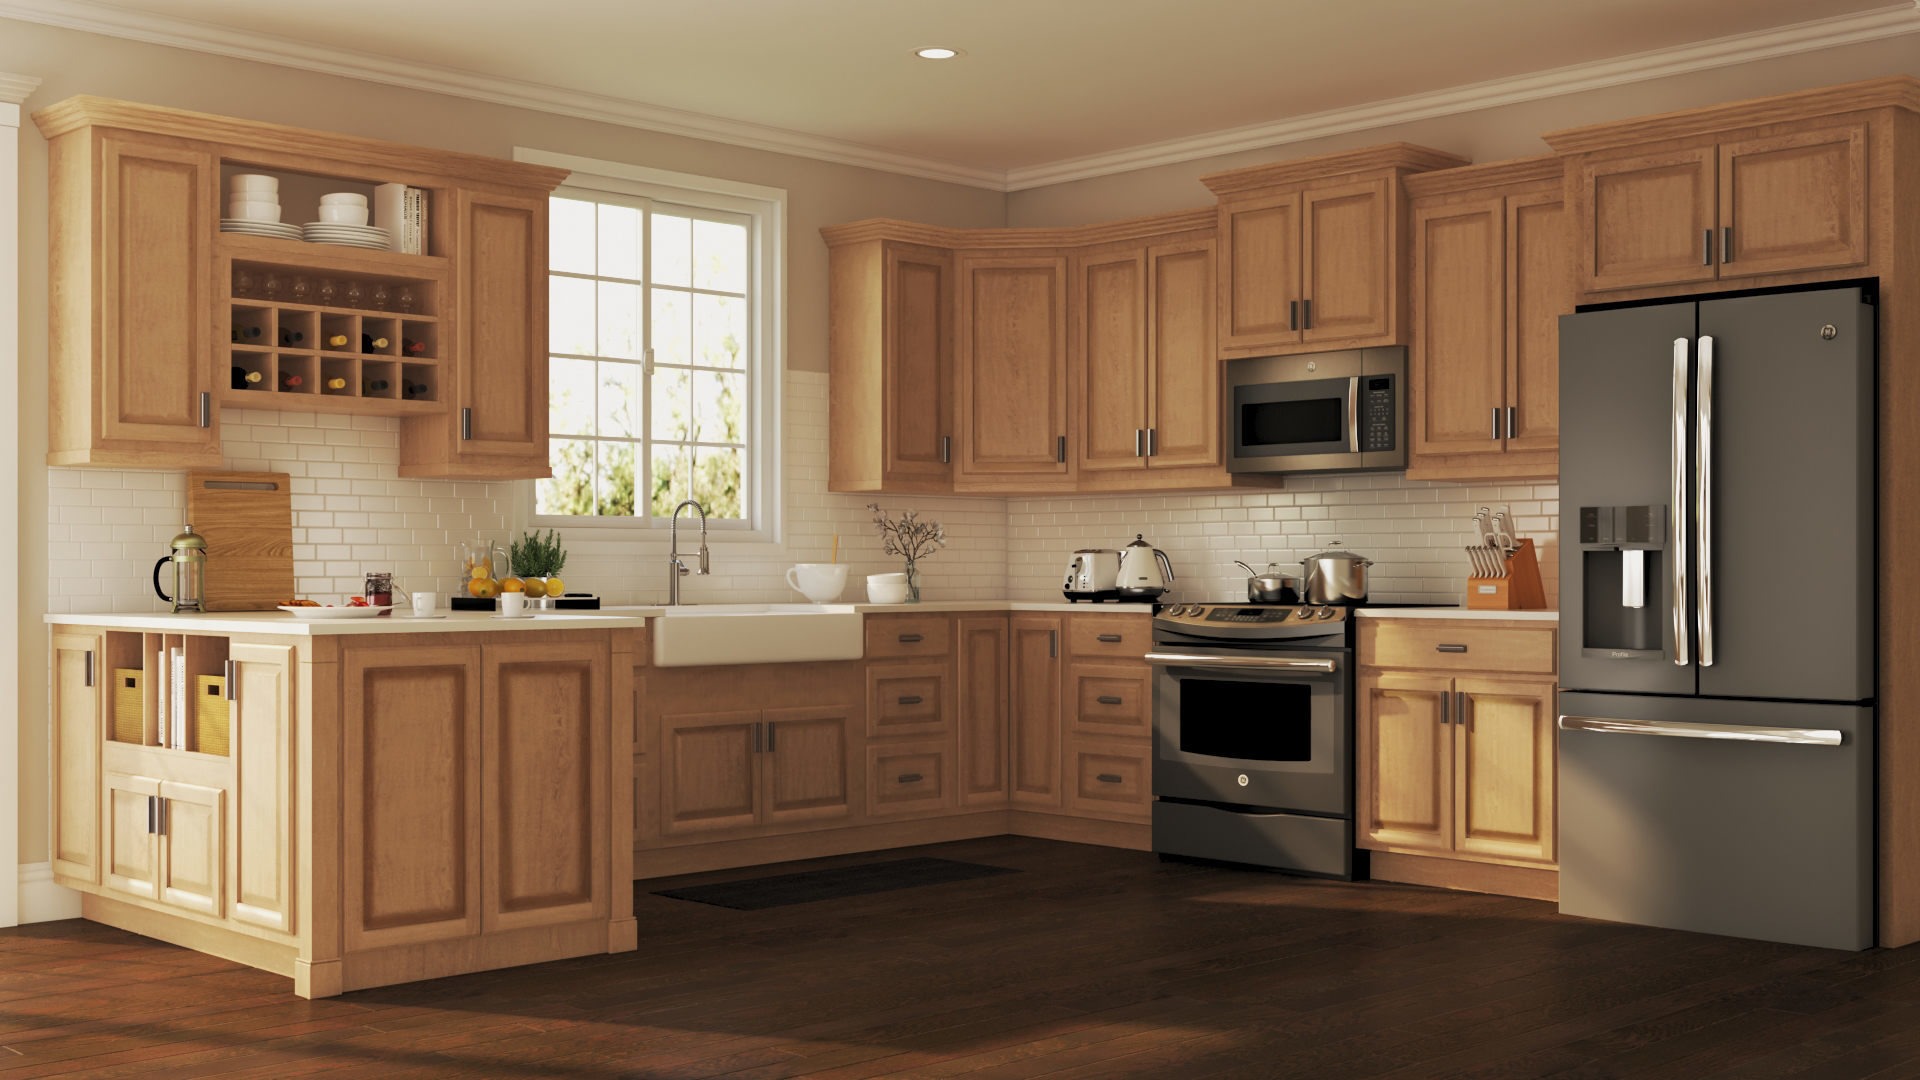 Hampton Wall Kitchen Cabinets in Medium Oak – Kitchen – The ...